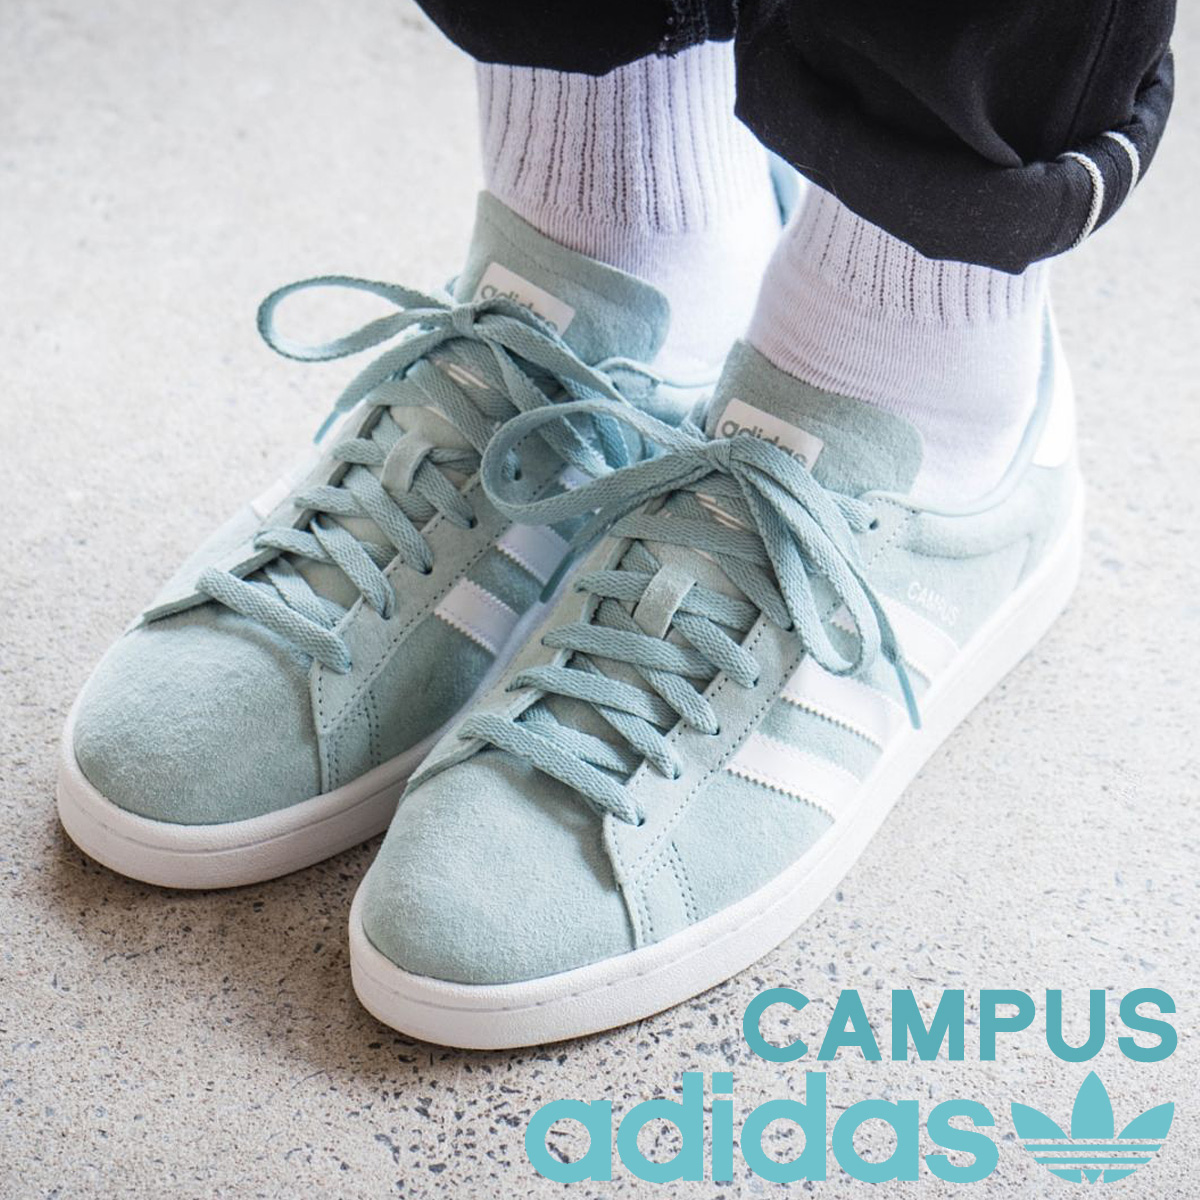 Allsports Adidas Originals Adidas Campus Sneakers Campus Men Gap